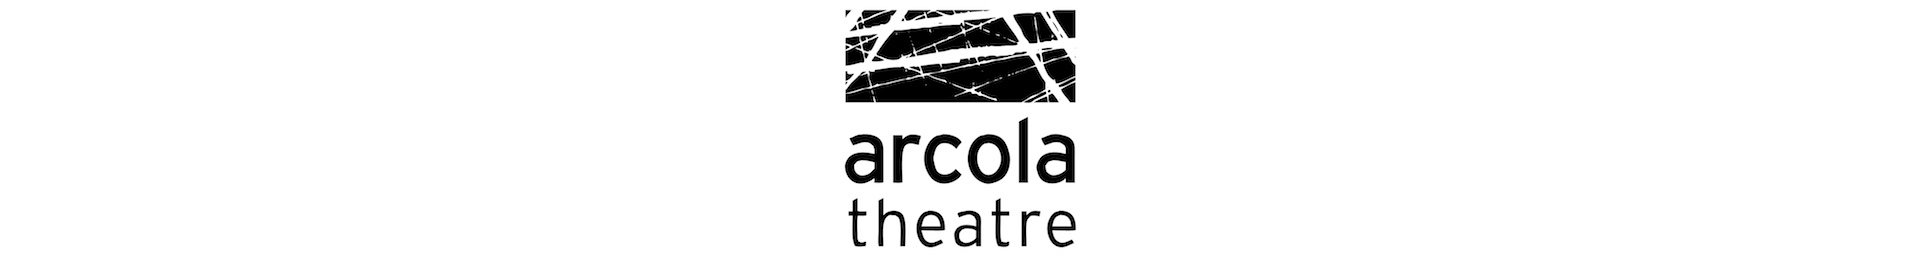 New Nigerians at the Arcola Theatre London Tickets